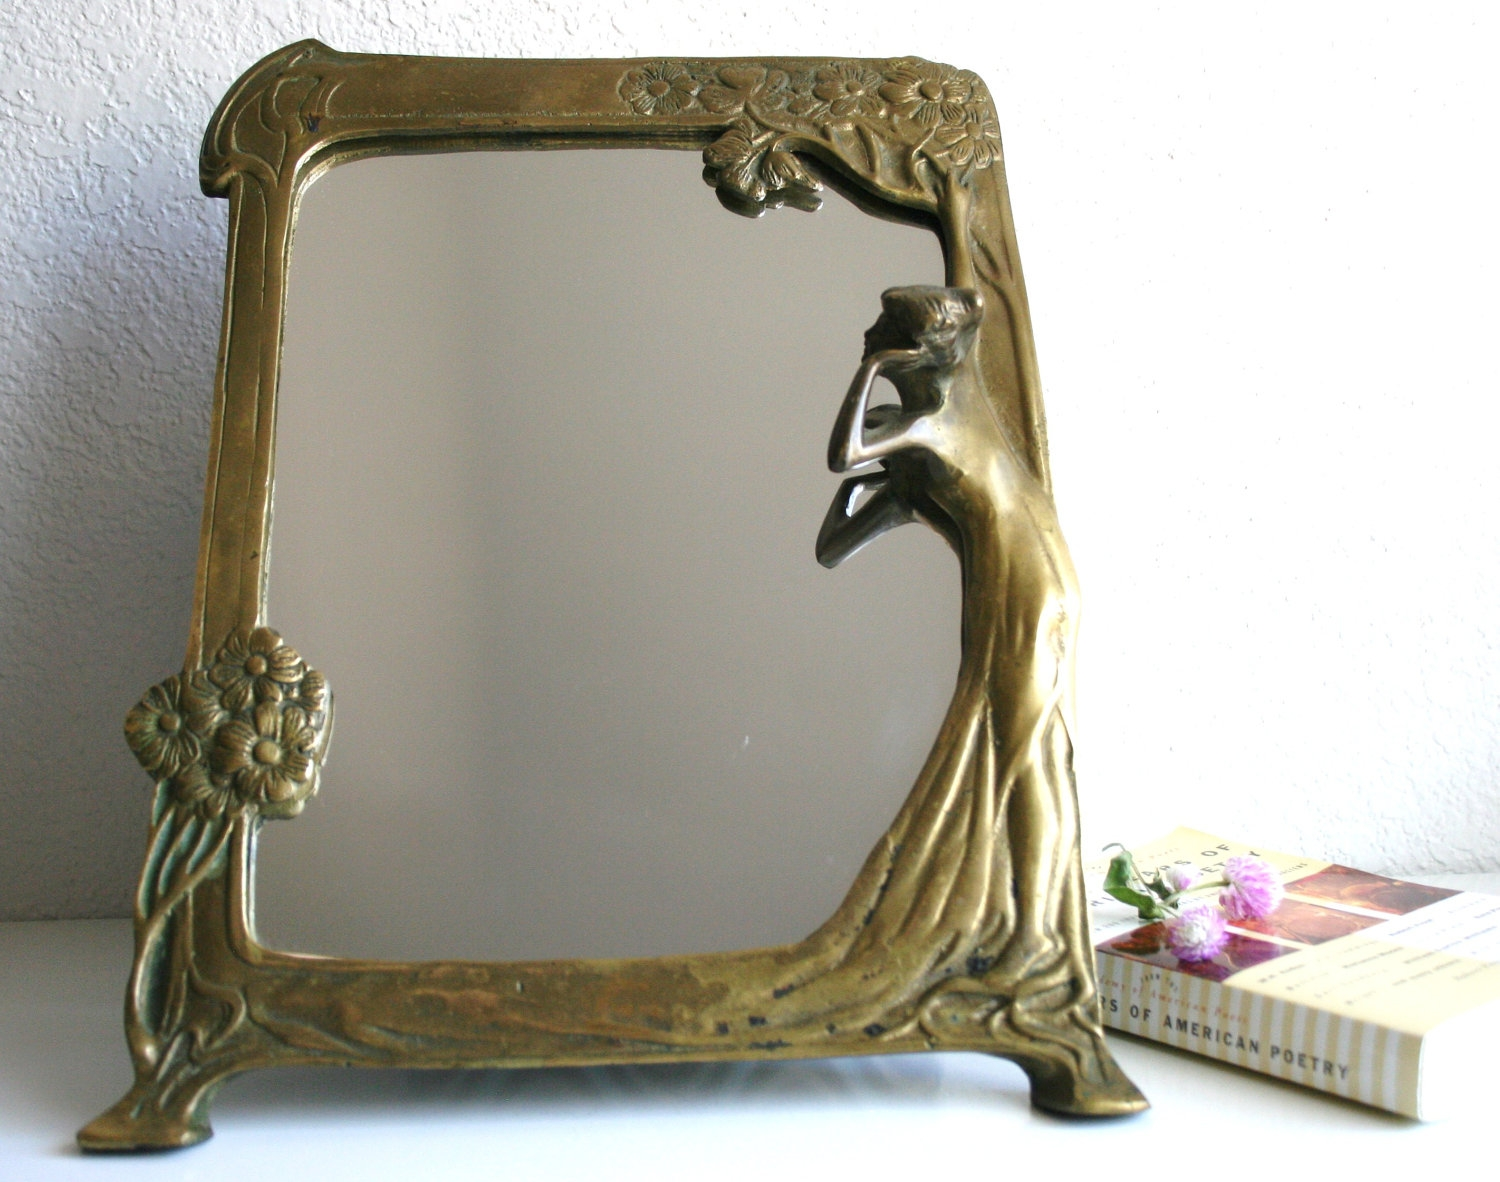 Art Nouveau Brass Table Mirror Intended For Mirror Art Nouveau (Image 3 of 15)